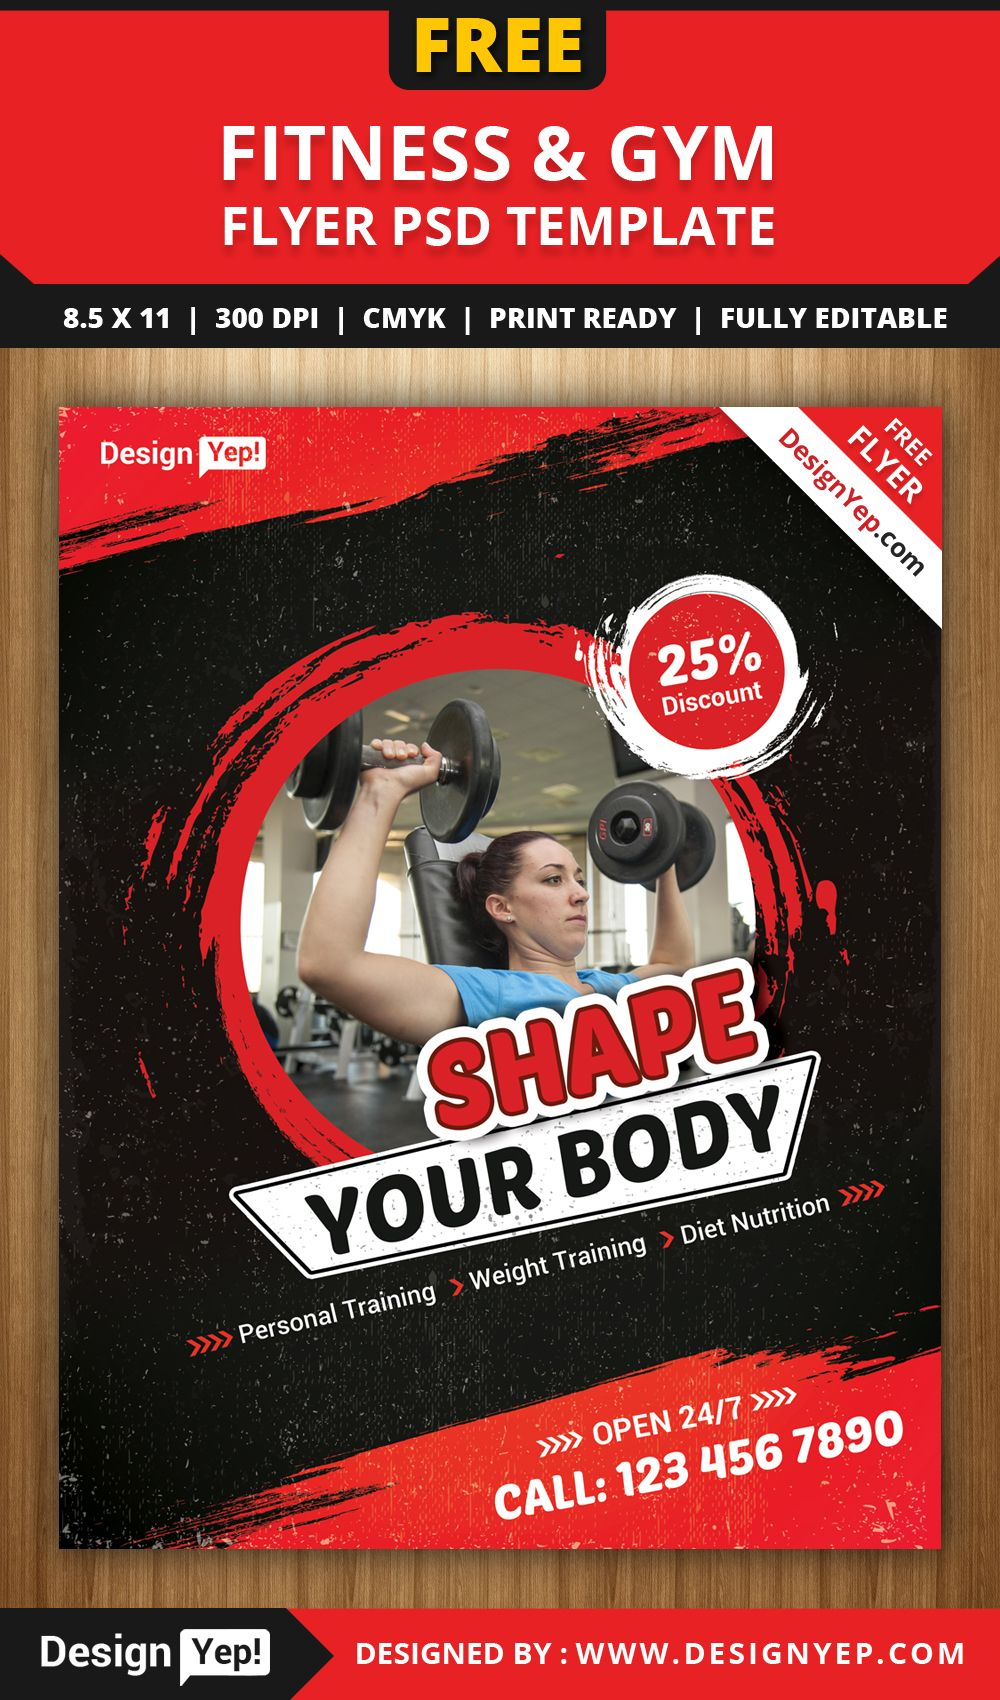 Free Fitness Gym Flyer Psd Template 4411 Designyep Free Flyers